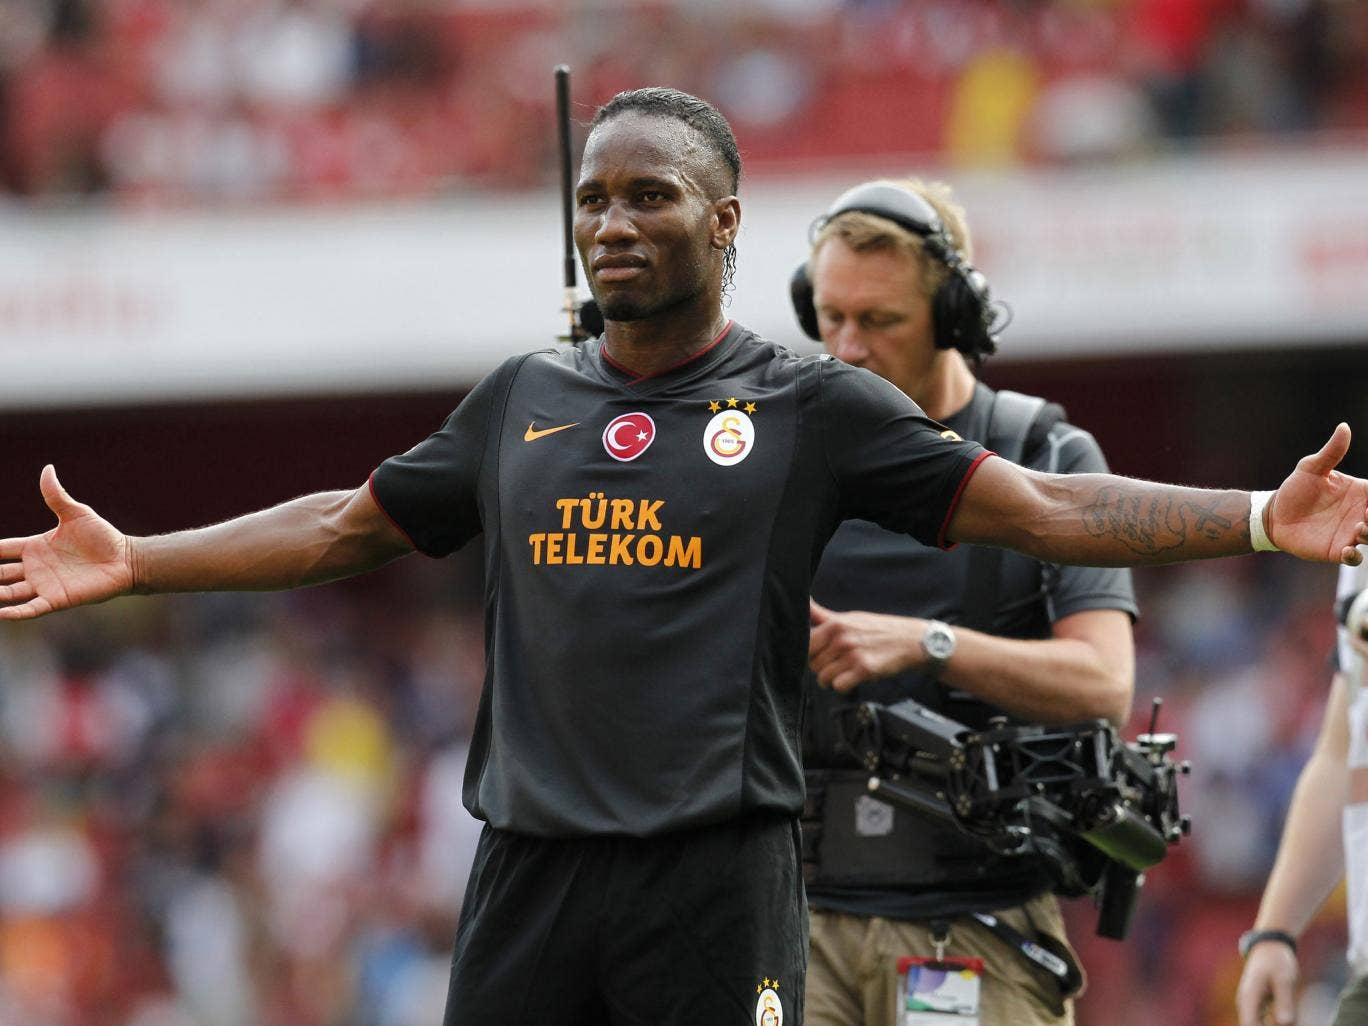 Galatasaray's Ivorian striker Didier Drogba reacts at the final whistle after scoring his side's two goals